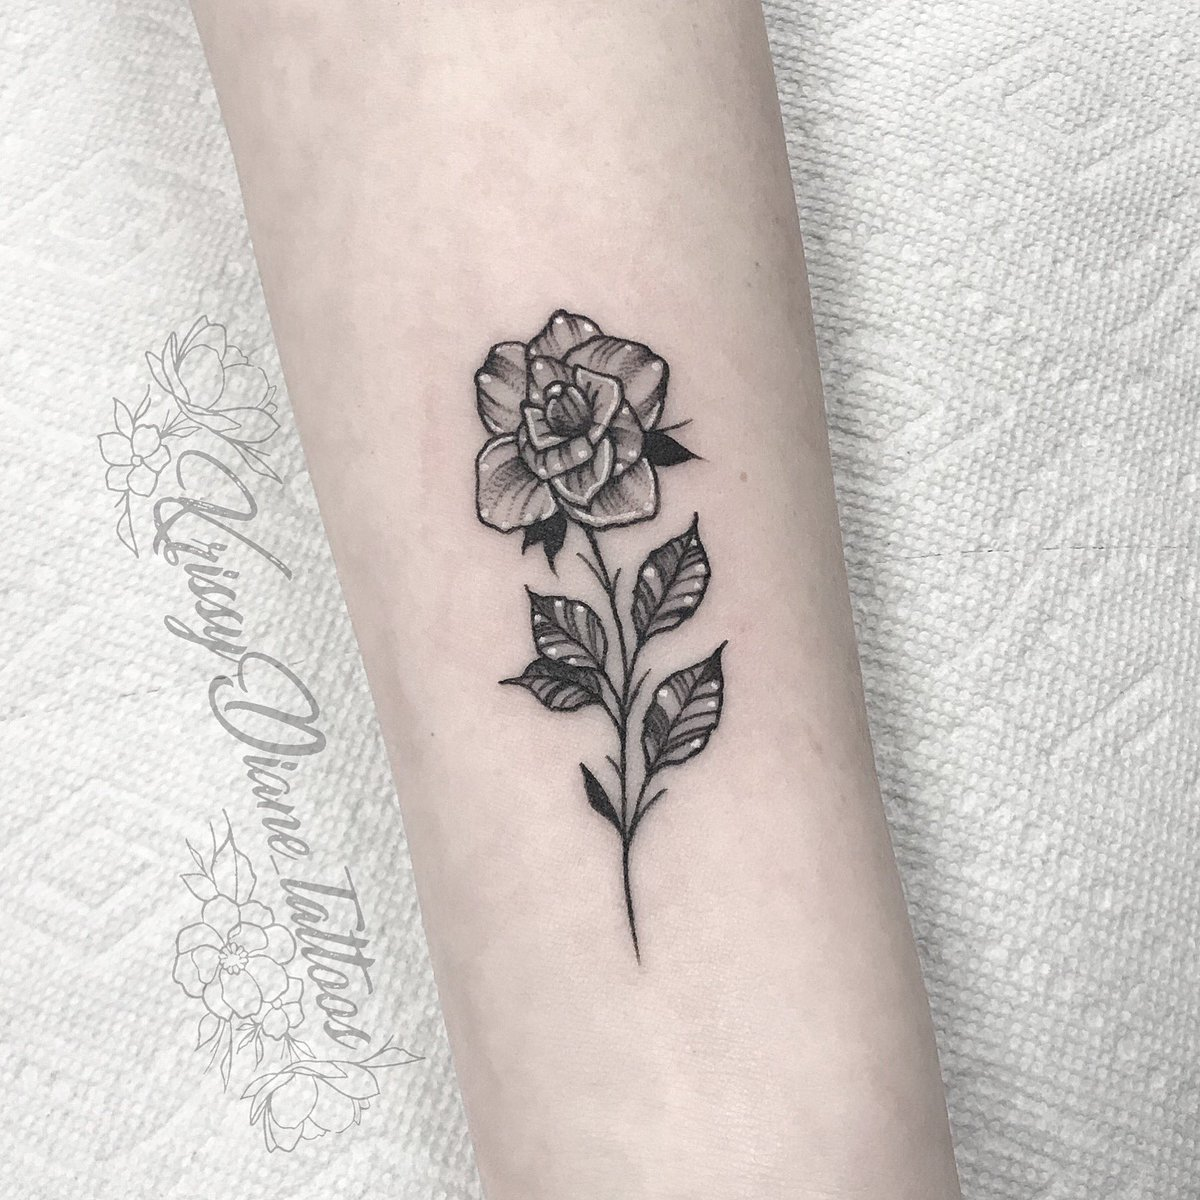 Krissy Bergquist On Twitter Cute Little Rose Smalltattoos